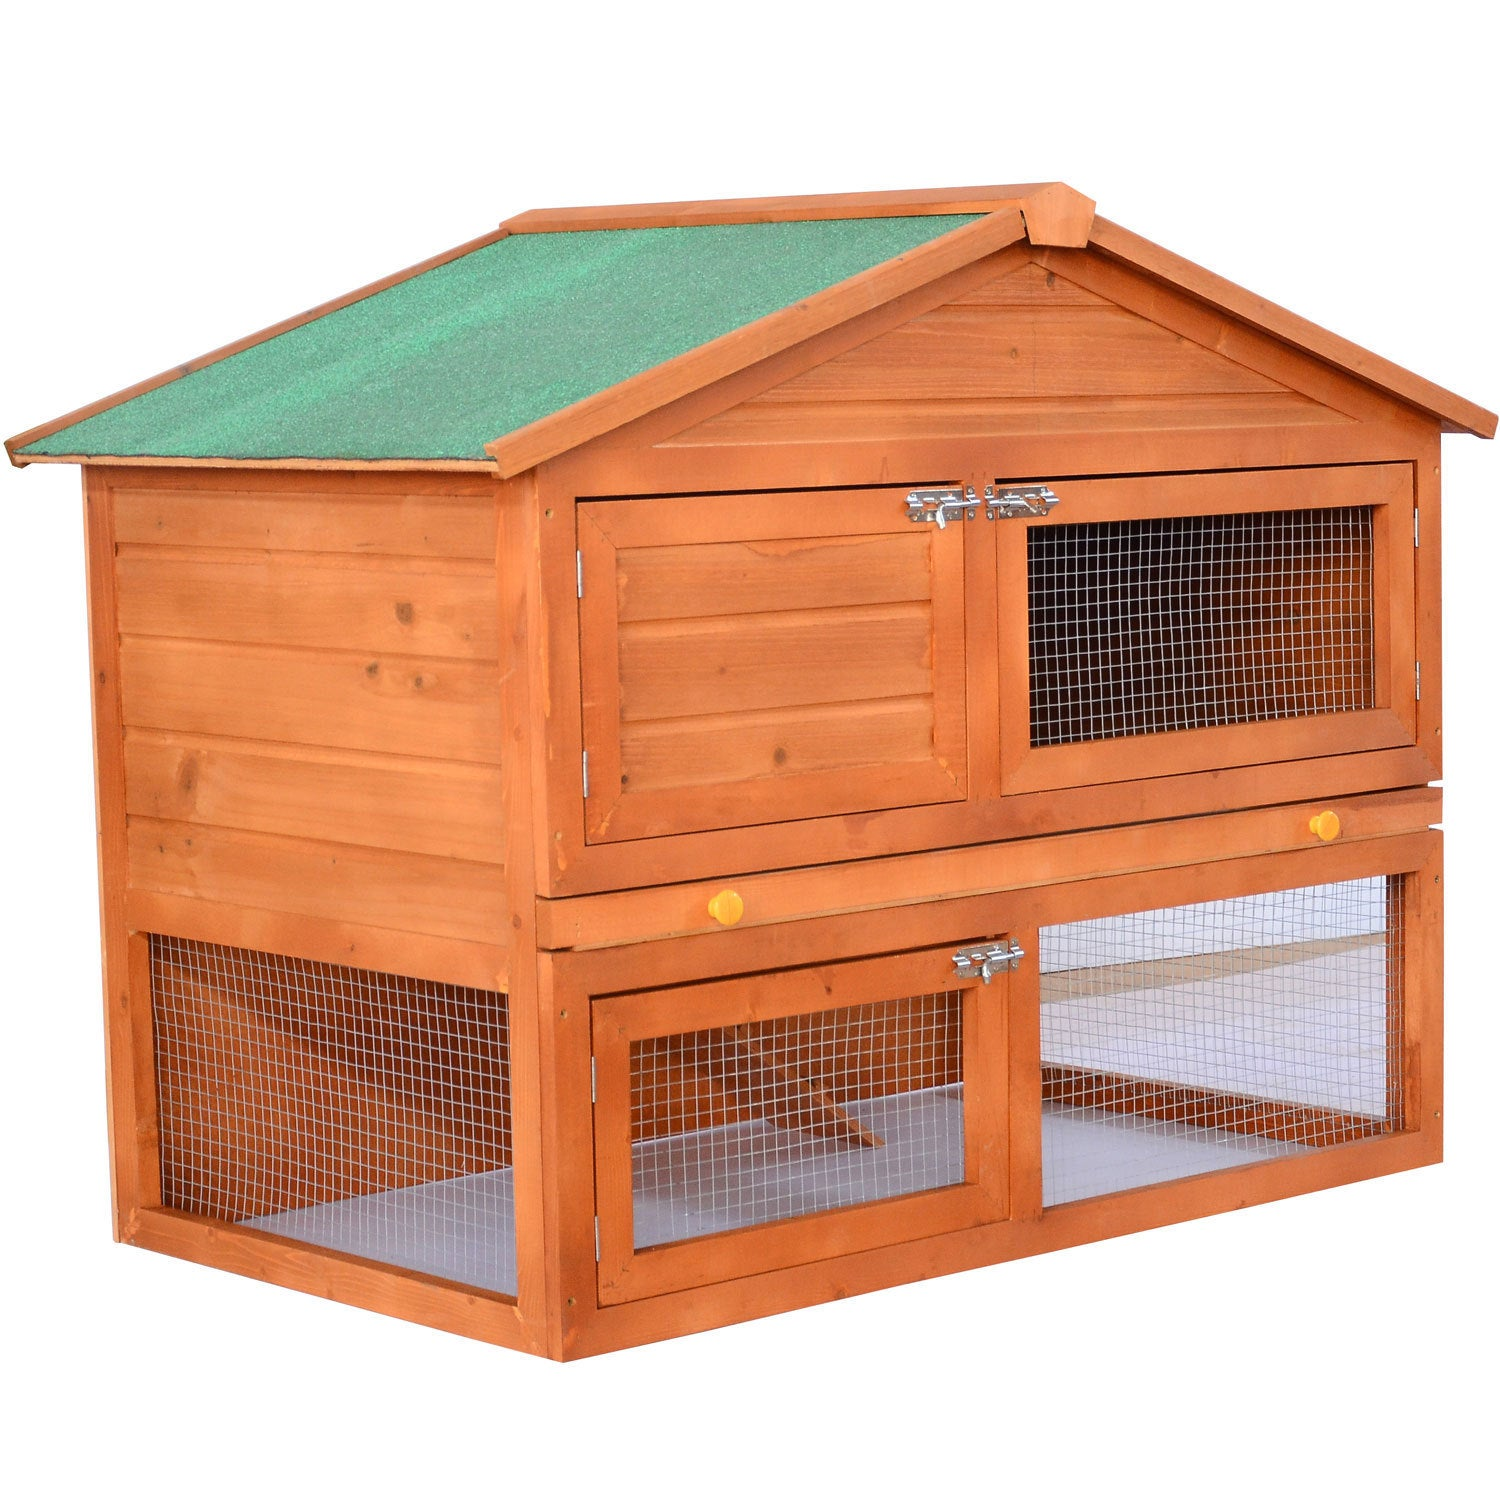 handmade outdoor free hutch can diy you for plans sale within hutches self the a rabbit houses weekend